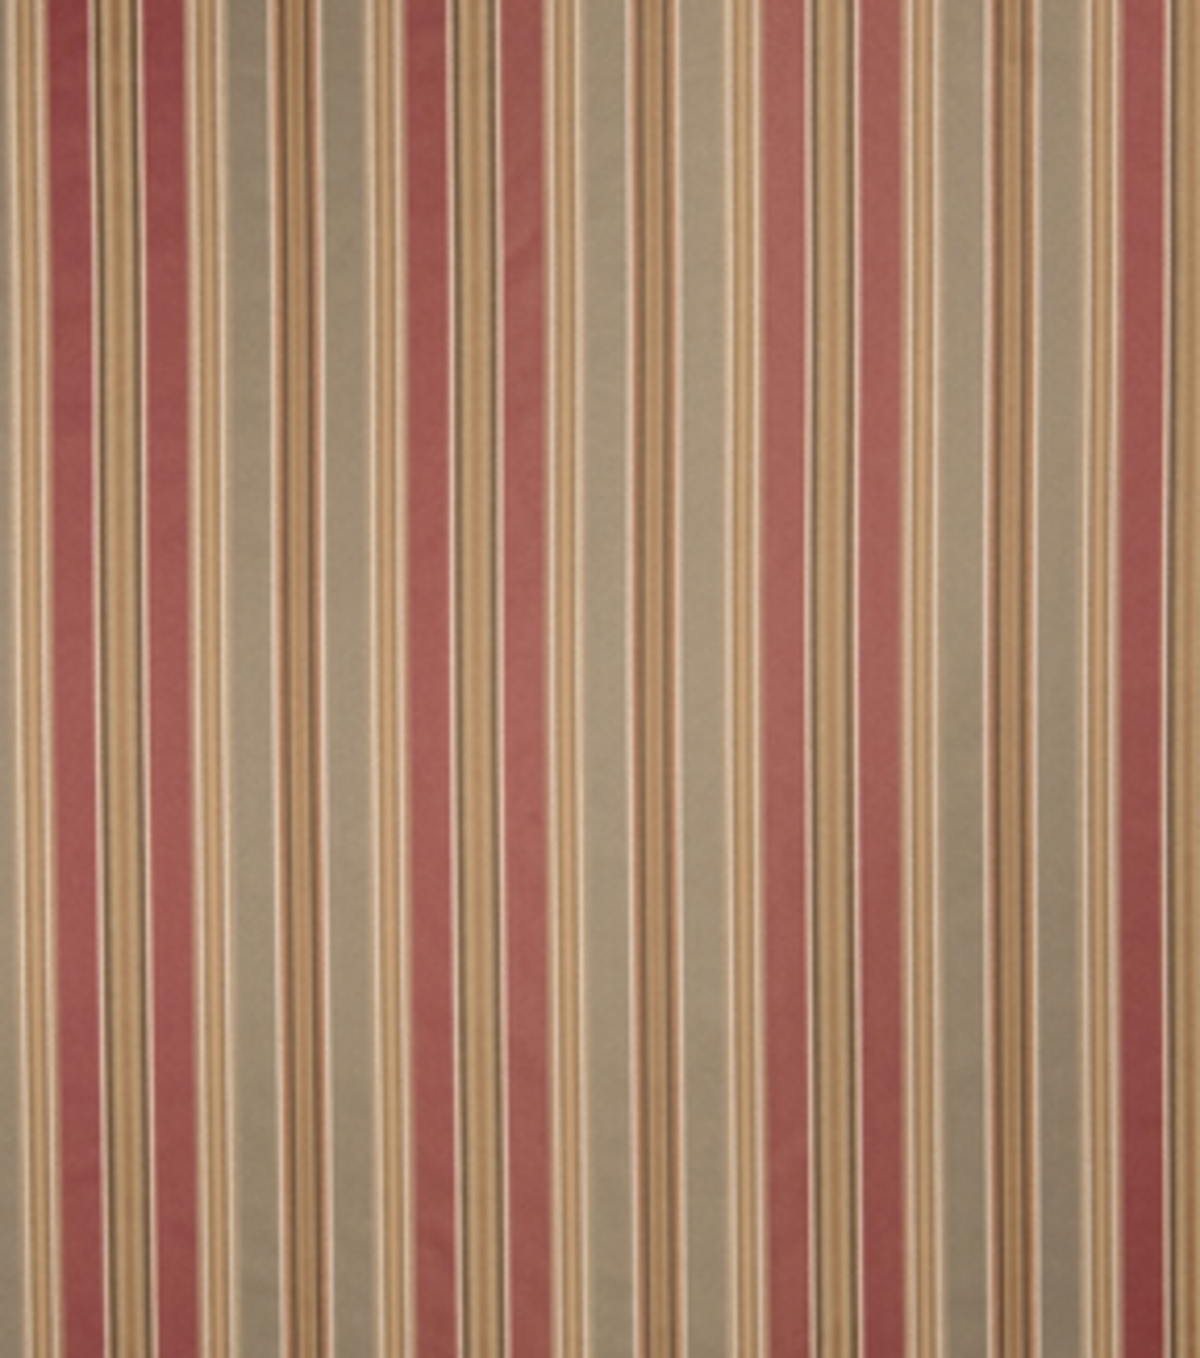 Home Decor 8\u0022x8\u0022 Fabric Swatch-Print Fabric Eaton Square Cuisine Eucalyptus